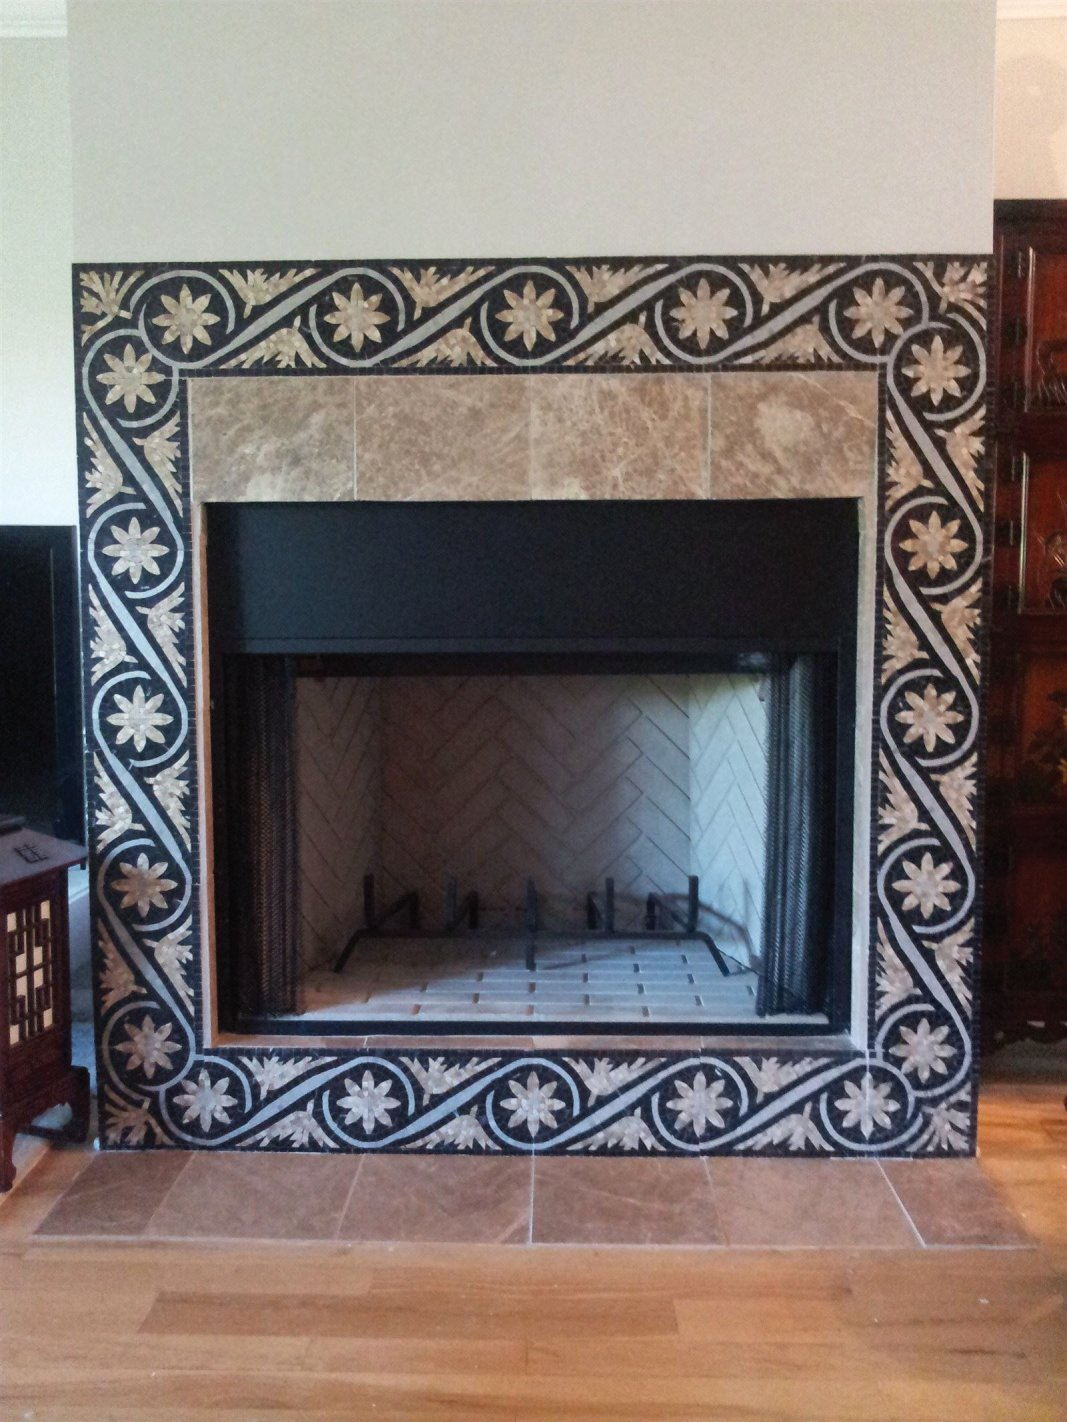 Prefab Fireplace Repair Jacksonville FL, Chimney sweep, chimney cap, chimney jacksonville, pressure cleaning, power washing, pressure washing, dryer vent cleaning